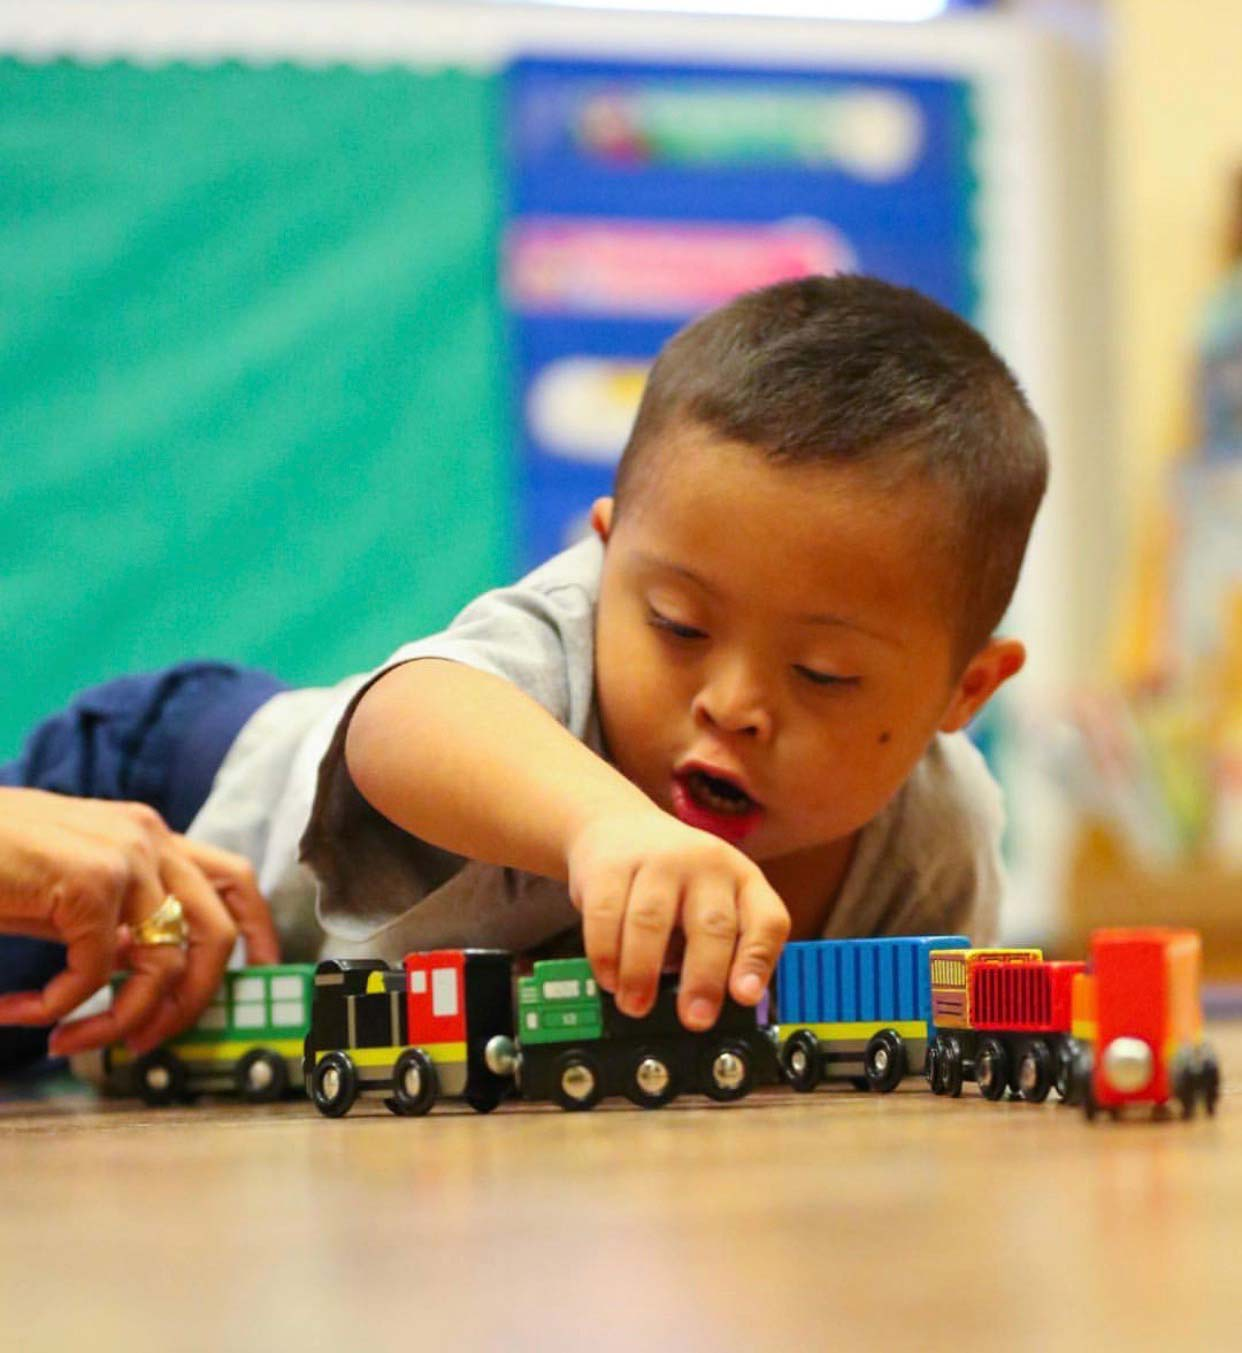 Boy Playing with train